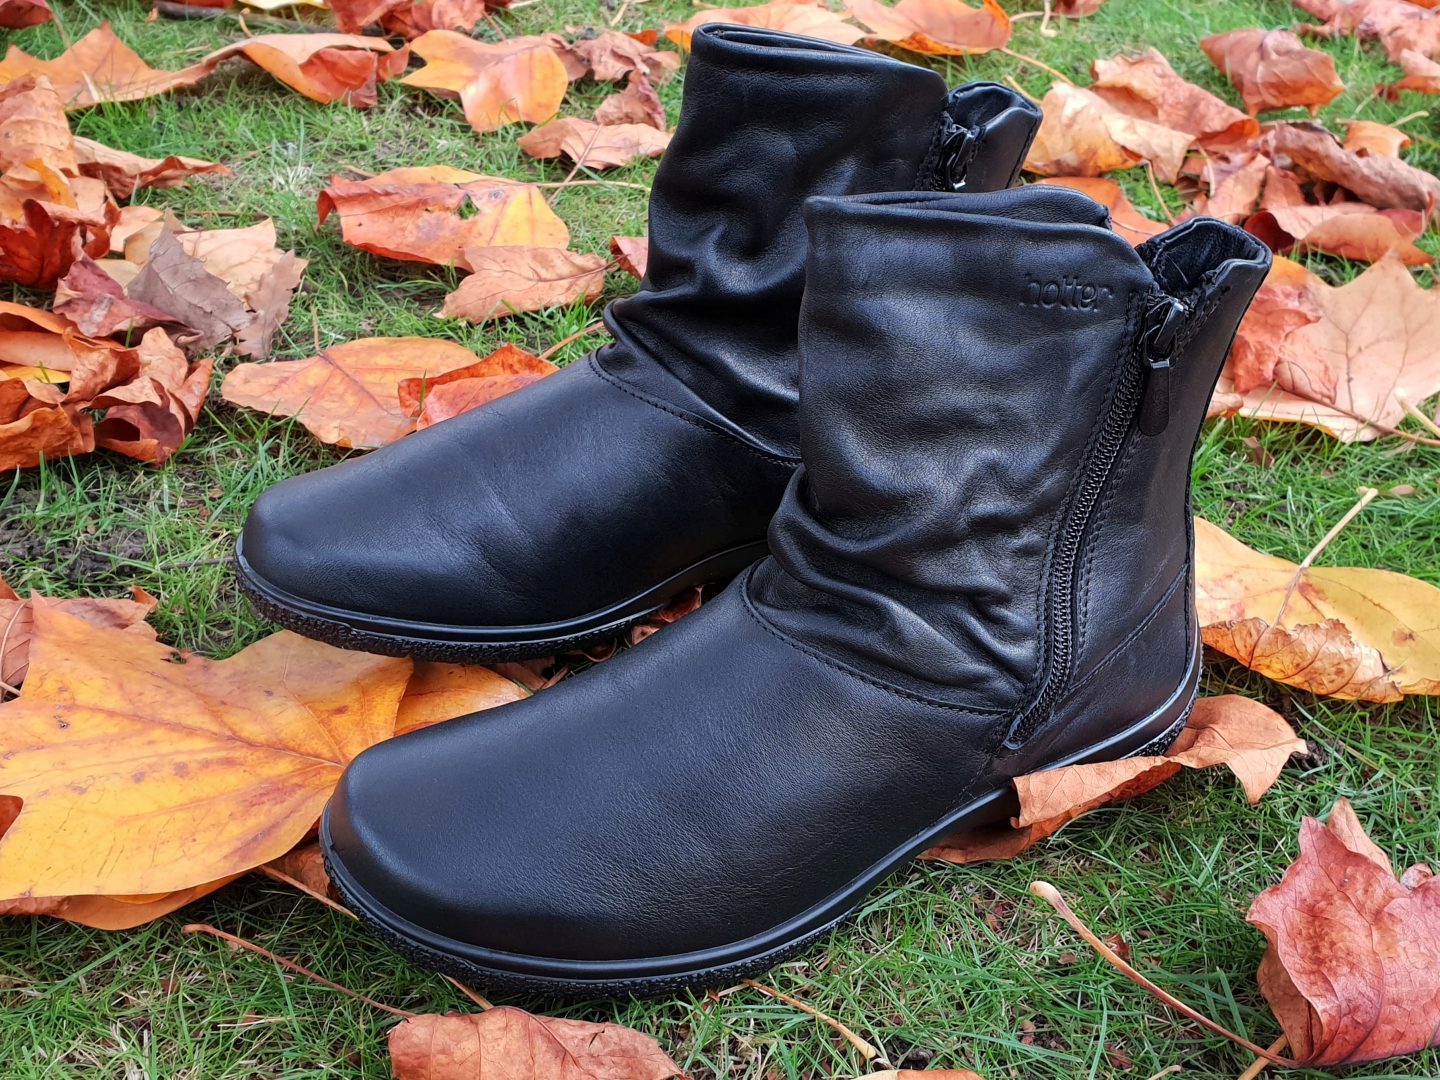 Hotter Whisper Boots - Black Leather - Review